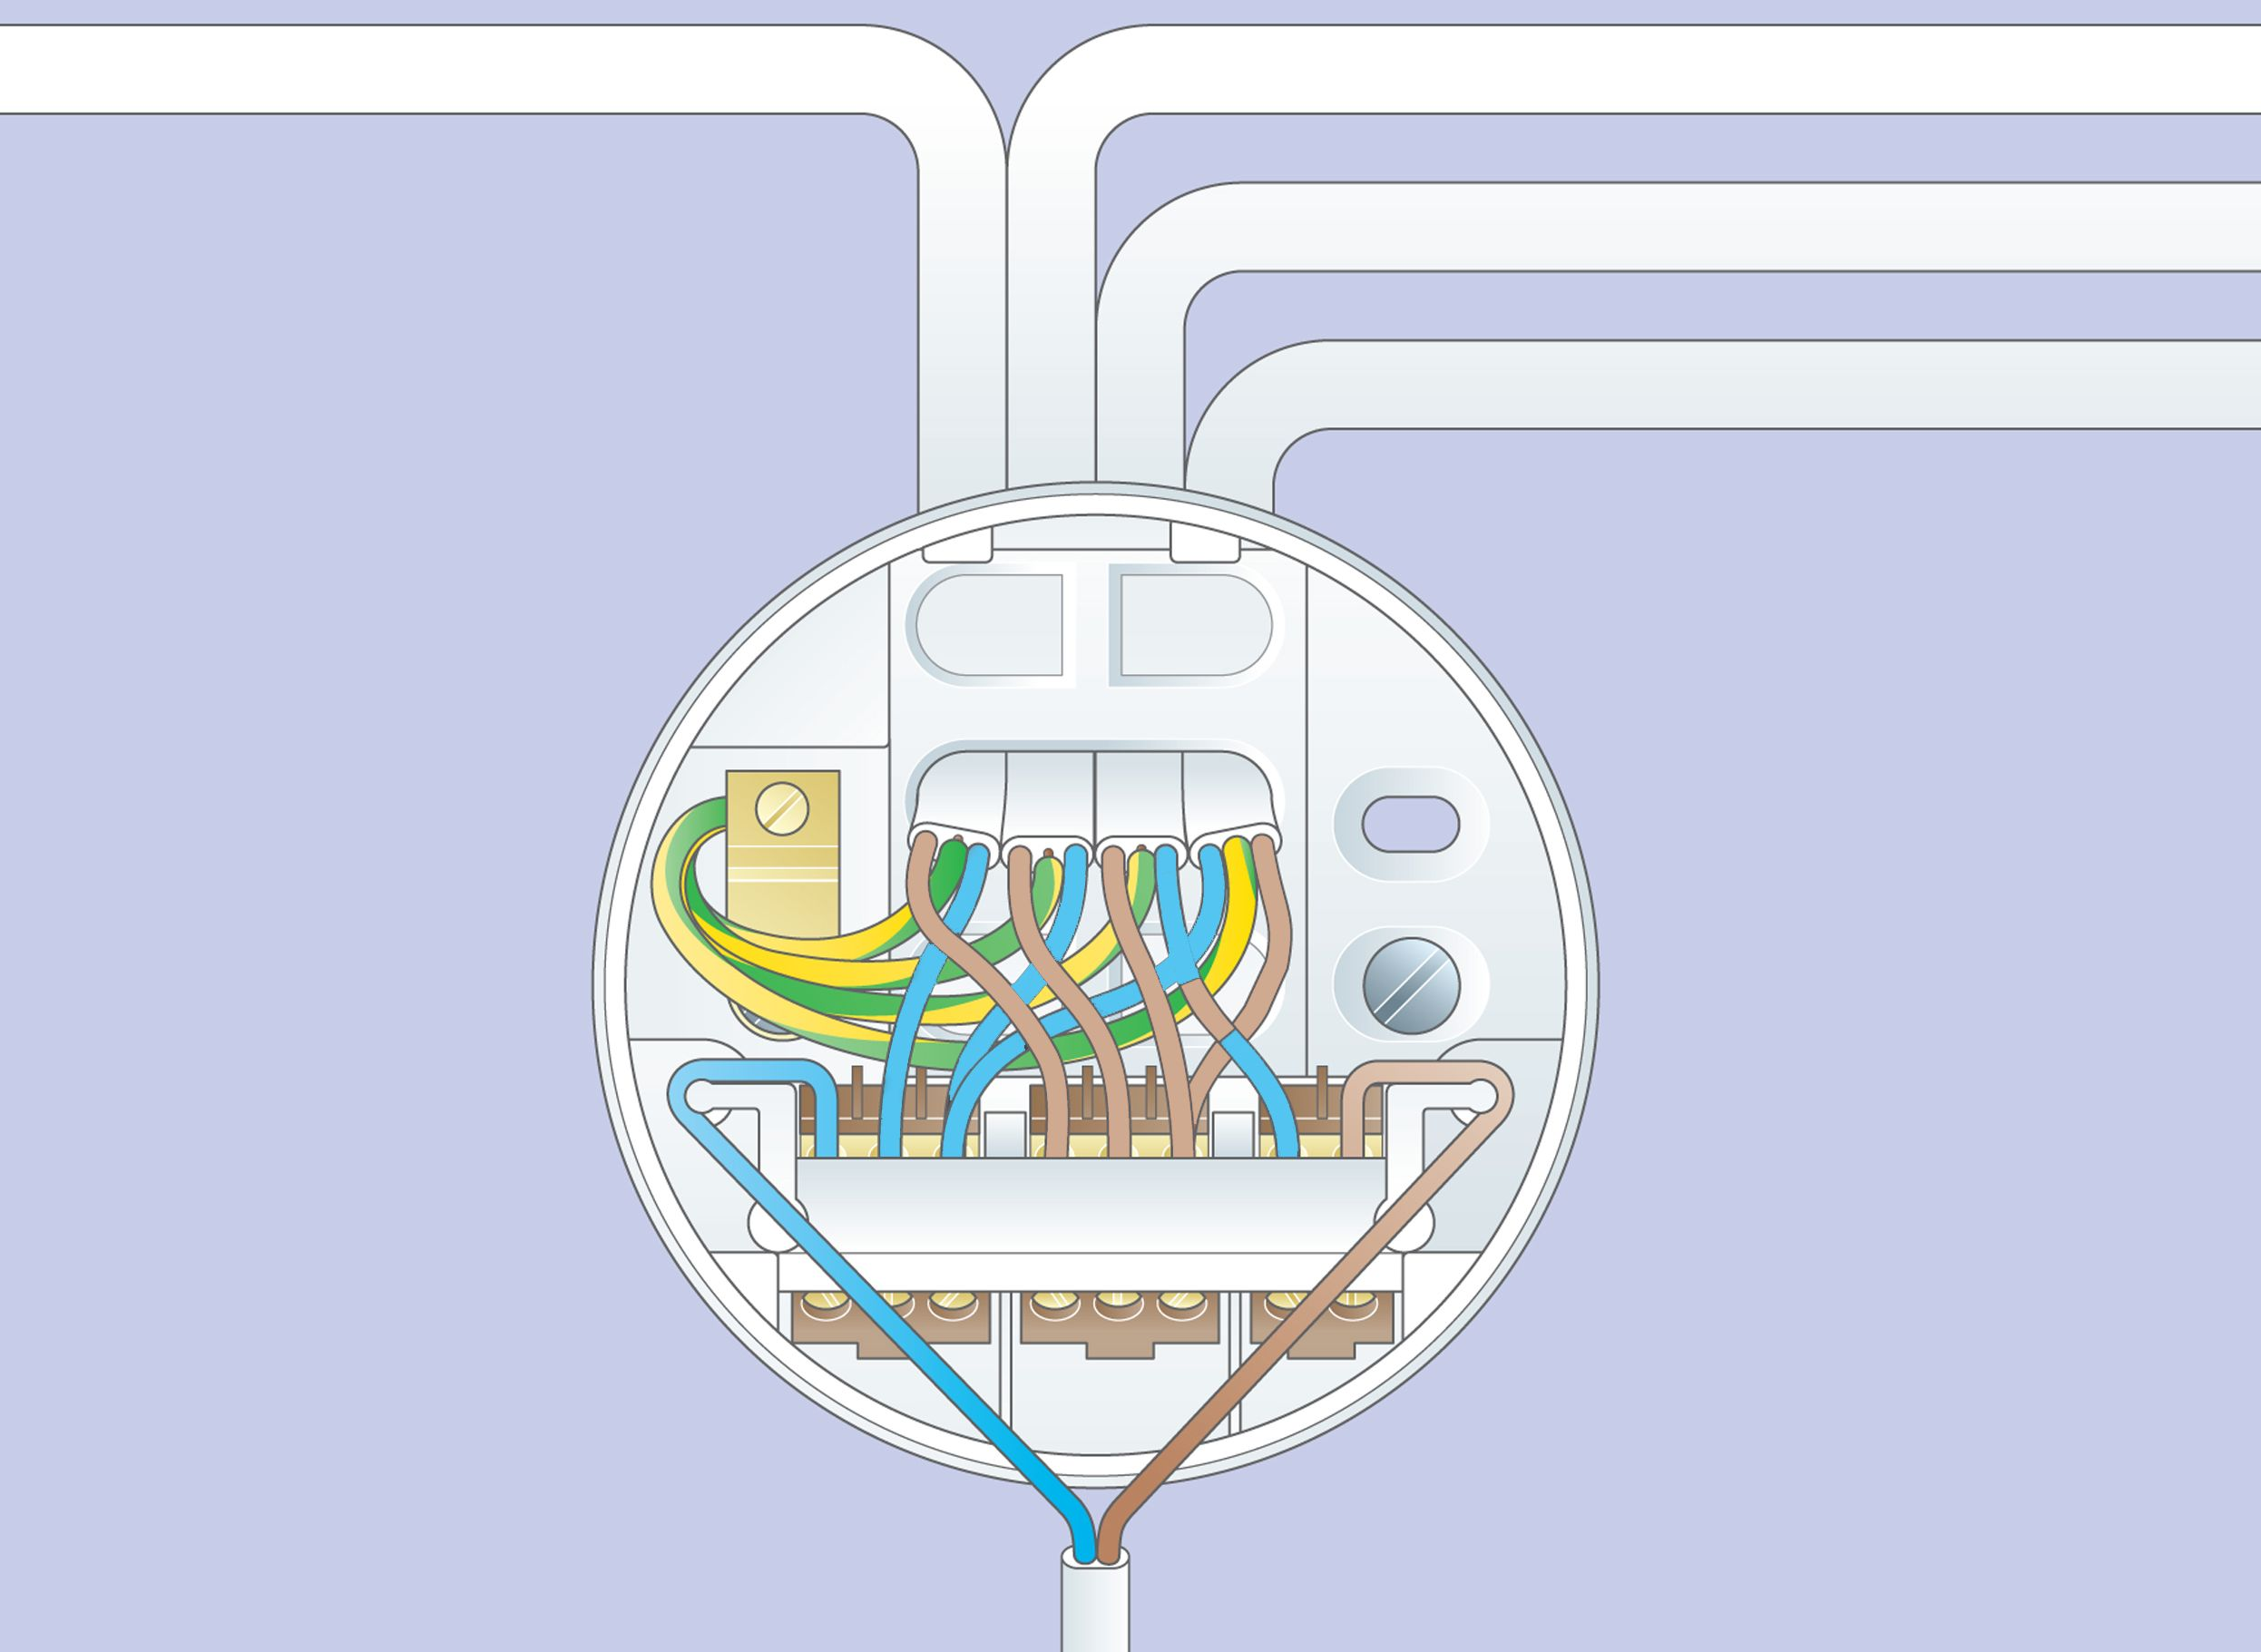 Electric Socket Wiring Diagram Uk Library Circuit Symbols